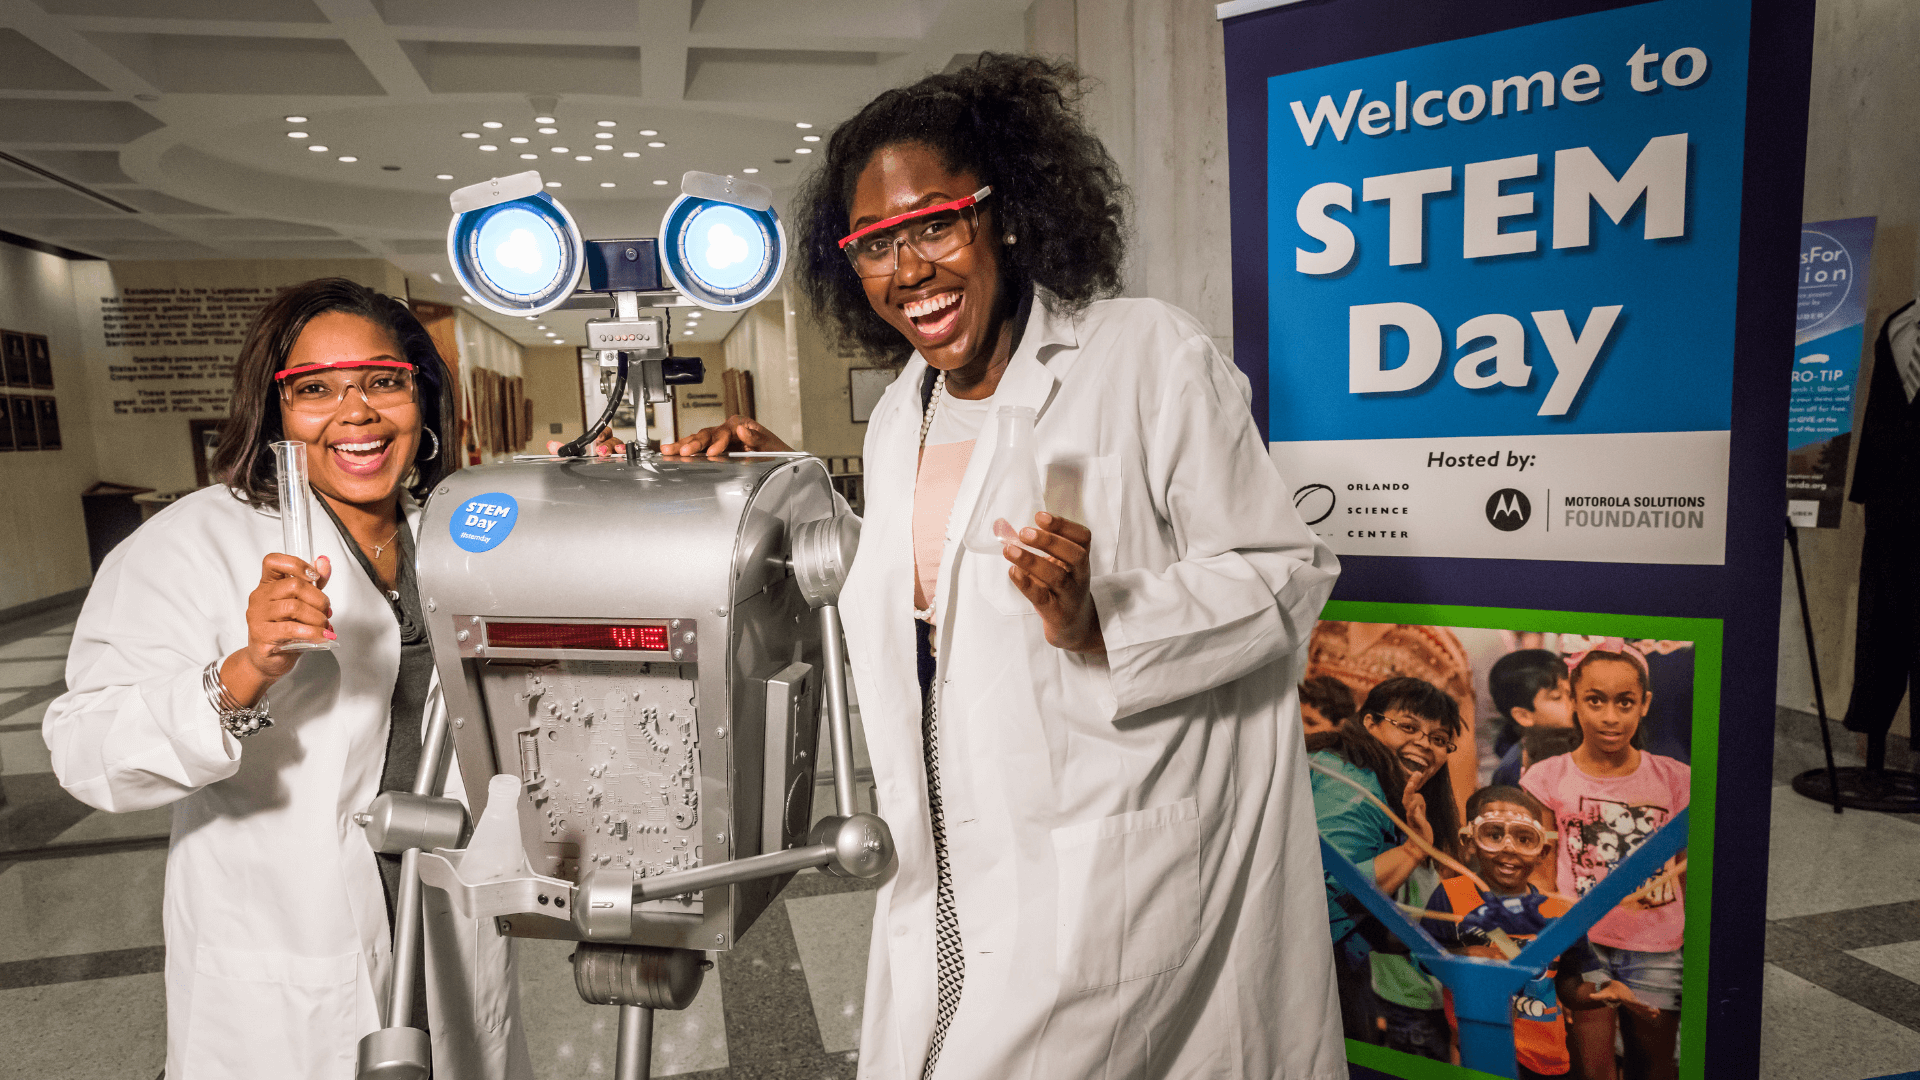 Two women during welcome to stem day event